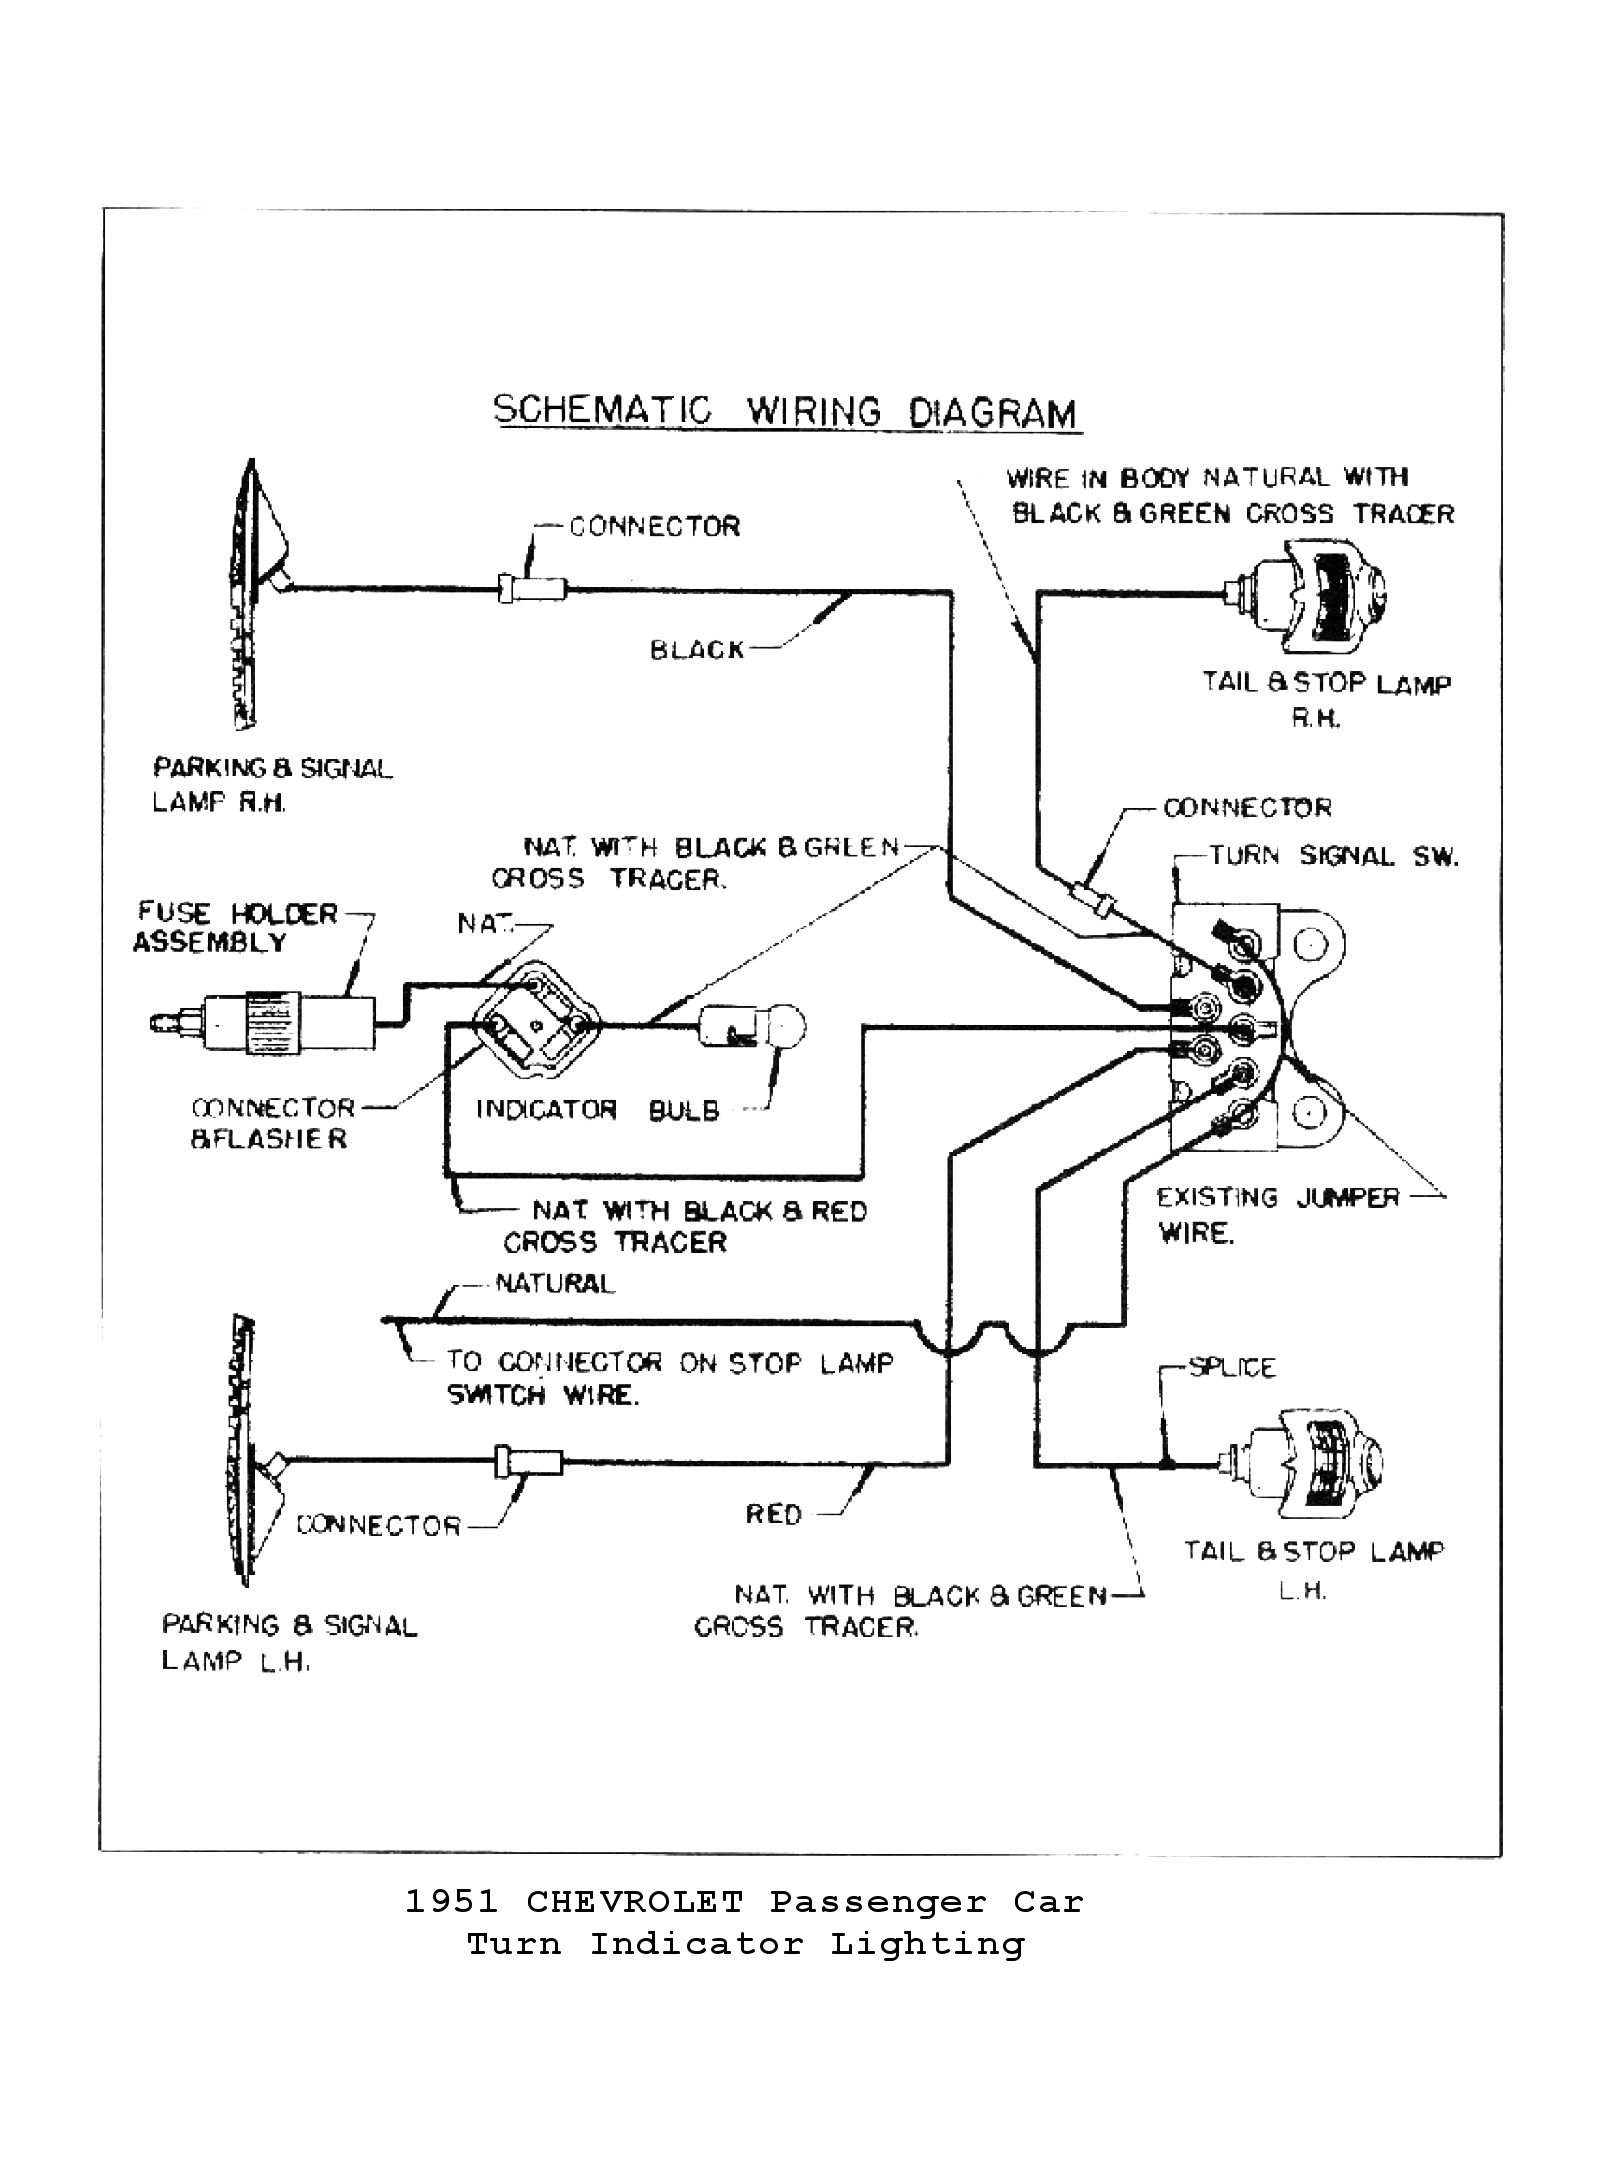 1955 Chevy Wiring Schematic Diagram Data 1970 Mustang For Lights Bel Air